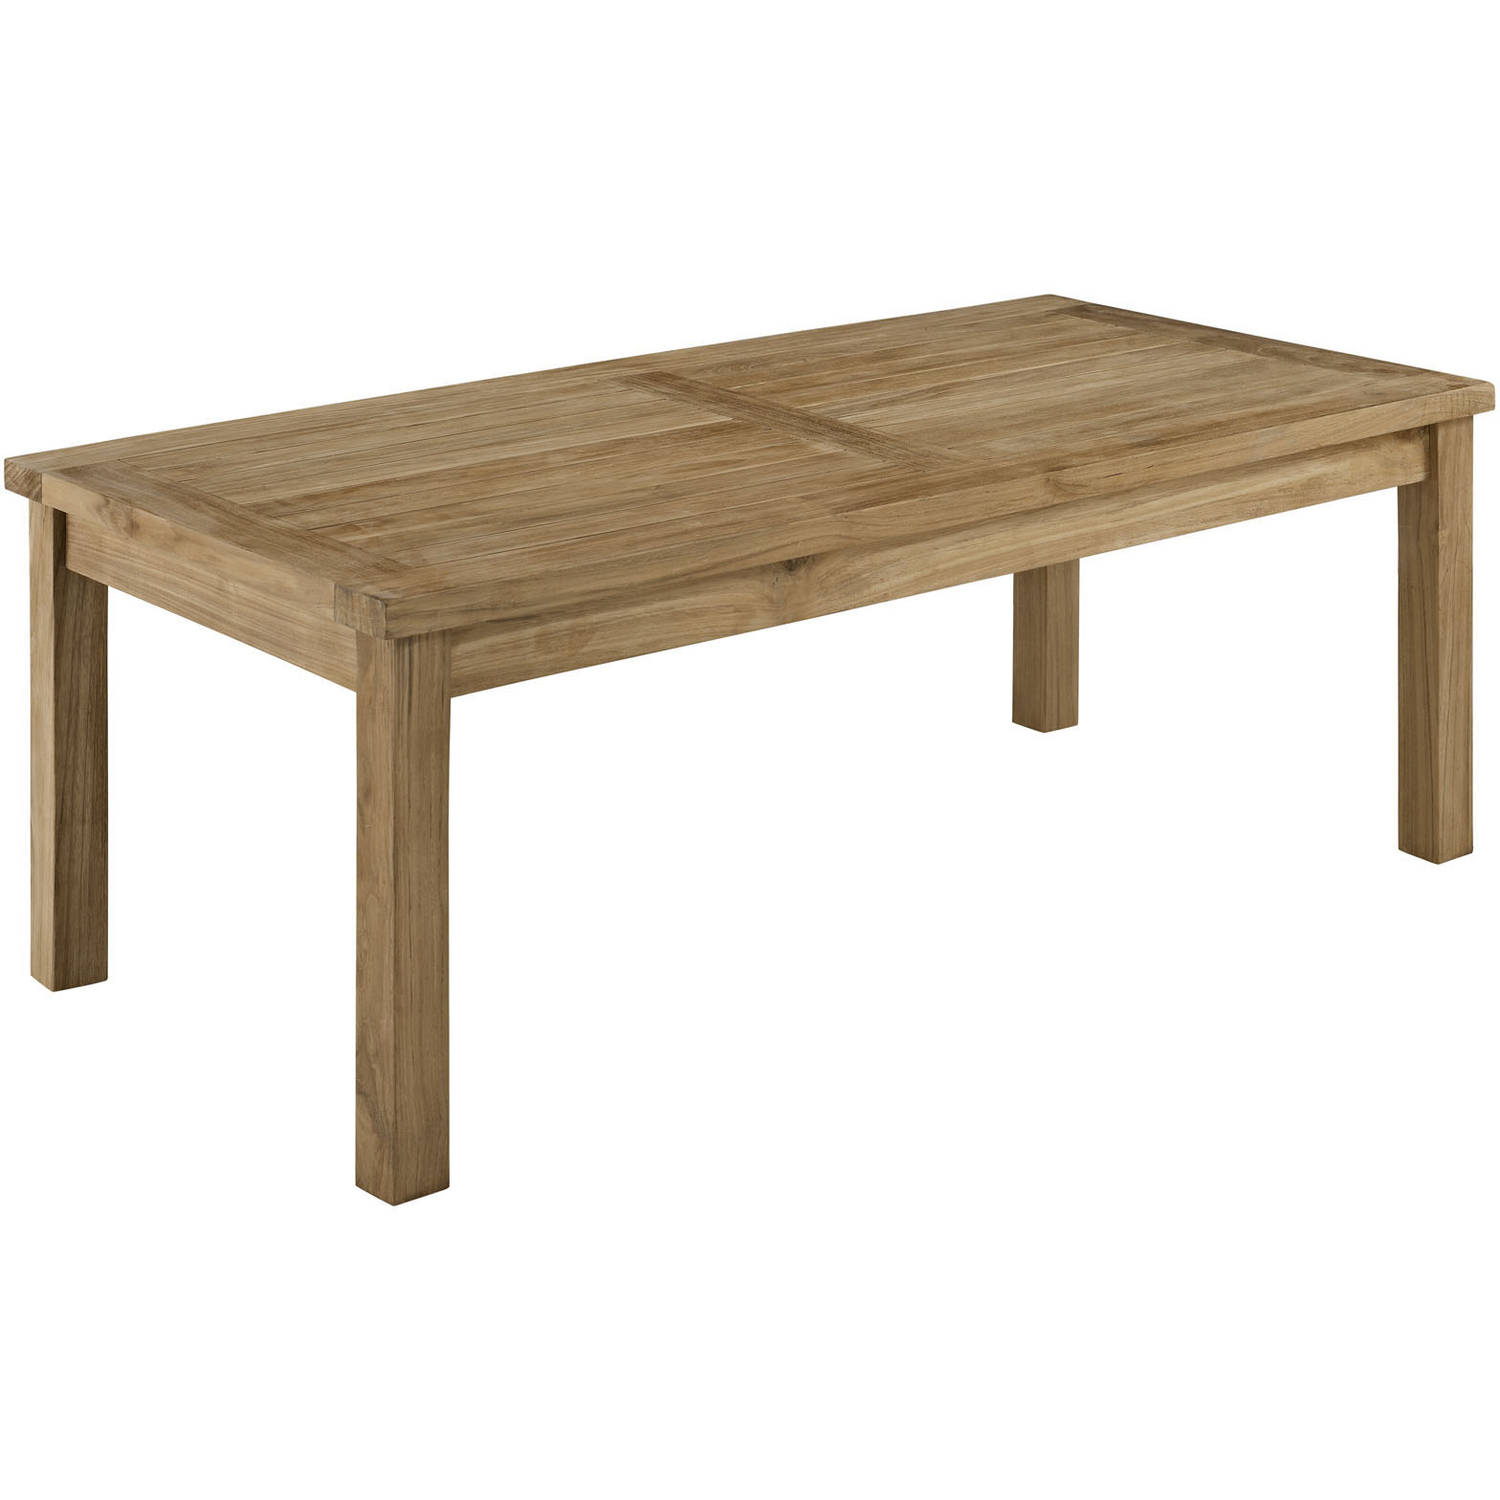 Modway Marina Outdoor Patio Teak Rectangle Coffee Table, Natural by Modway